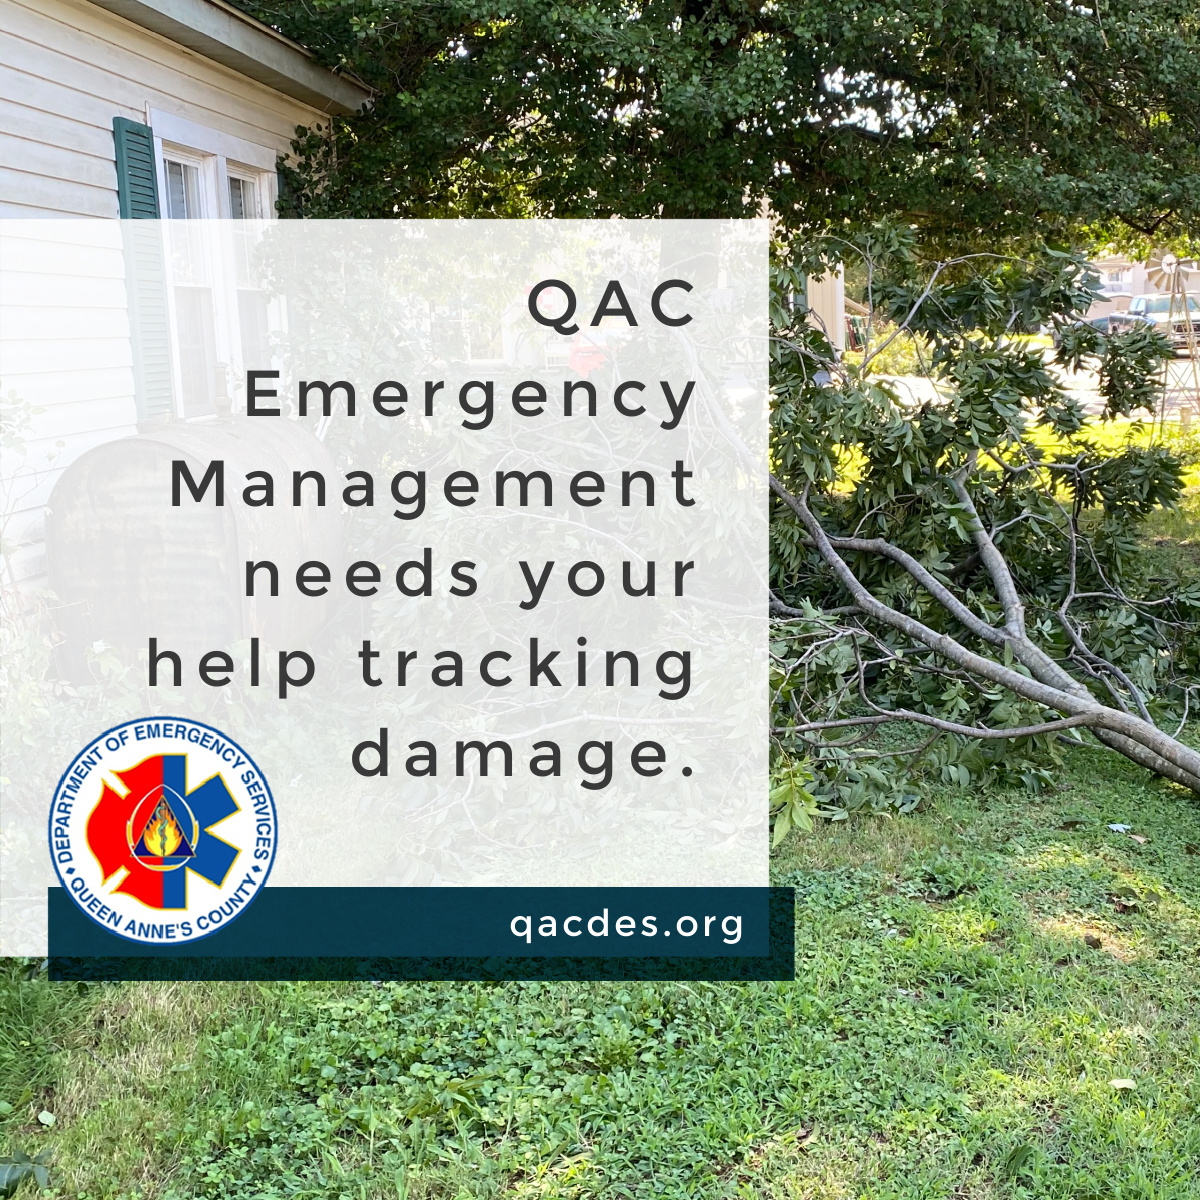 Our Emergency Management team needs your help tracking damage from yesterday. Please send pictures or videos of the storm or of damage to Queen Anne's County Department of Emergency Services Facebook page.